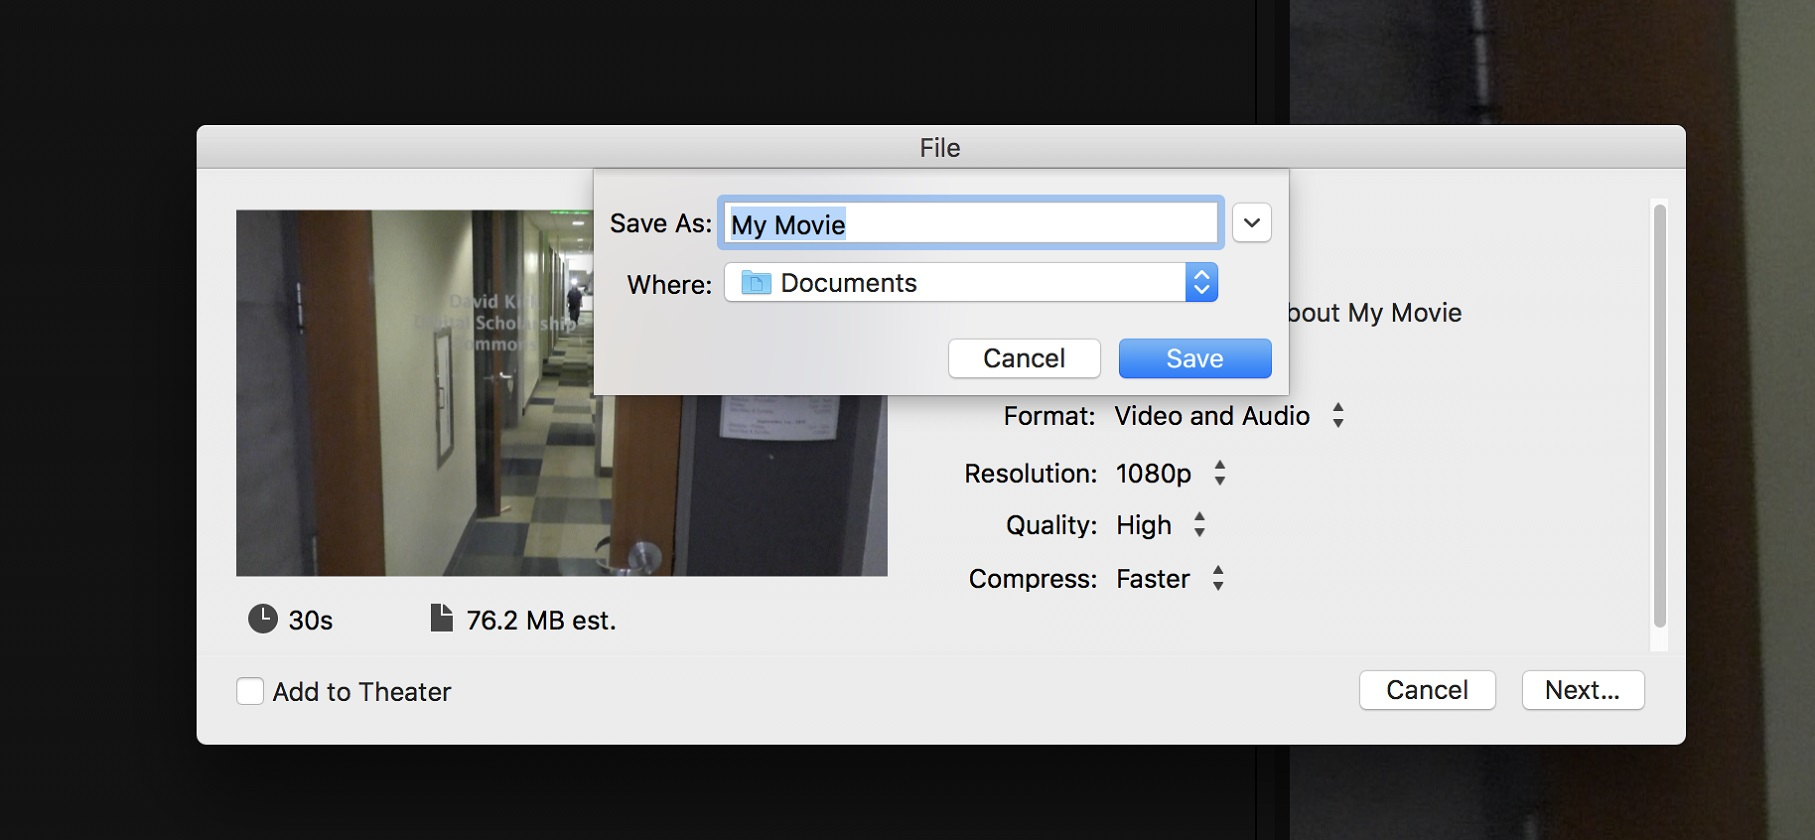 iMovie saving the .mp4 file